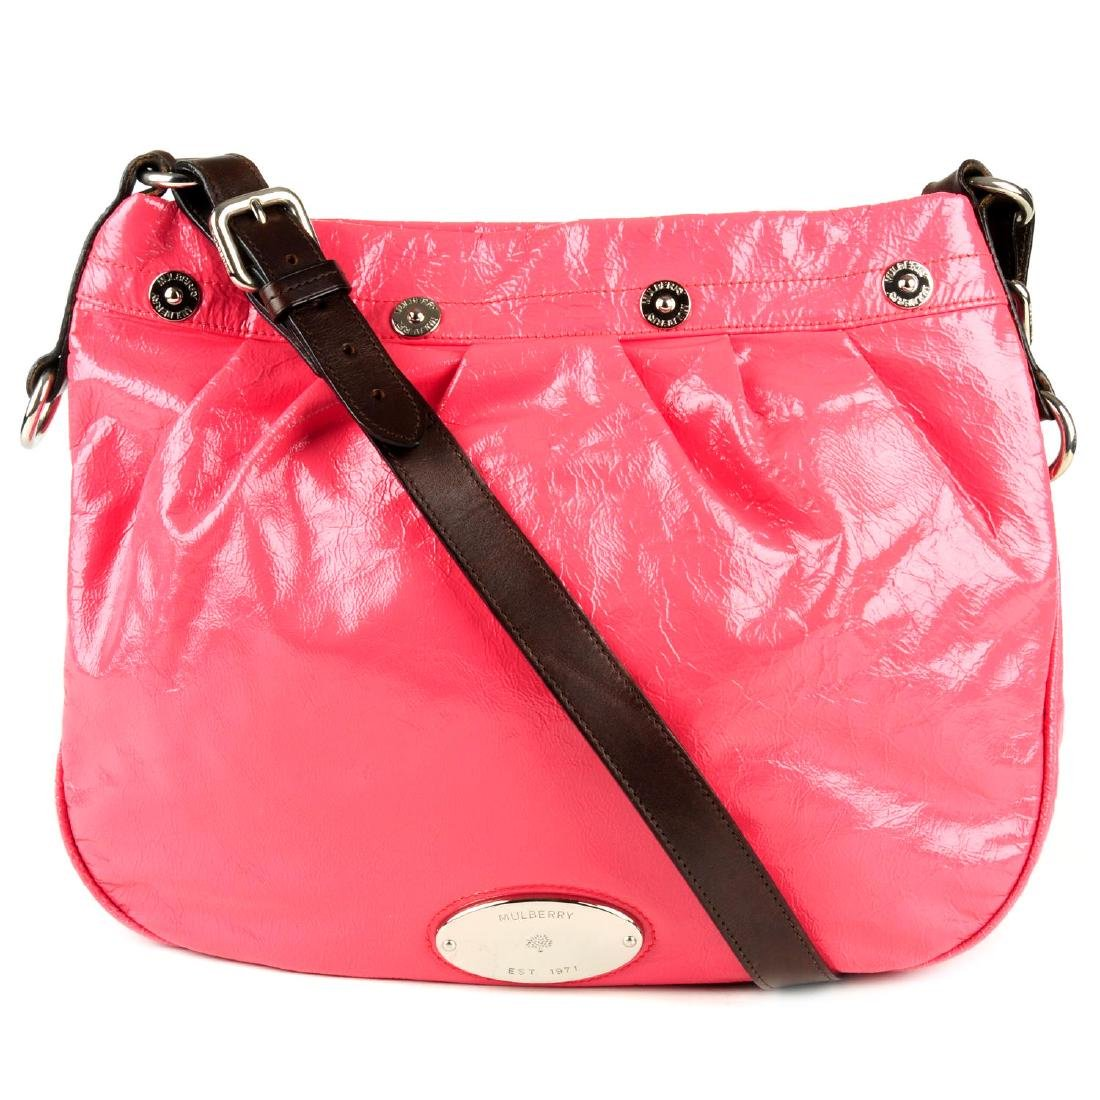 MULBERRY - a pink patent leather handbag. Featuring a